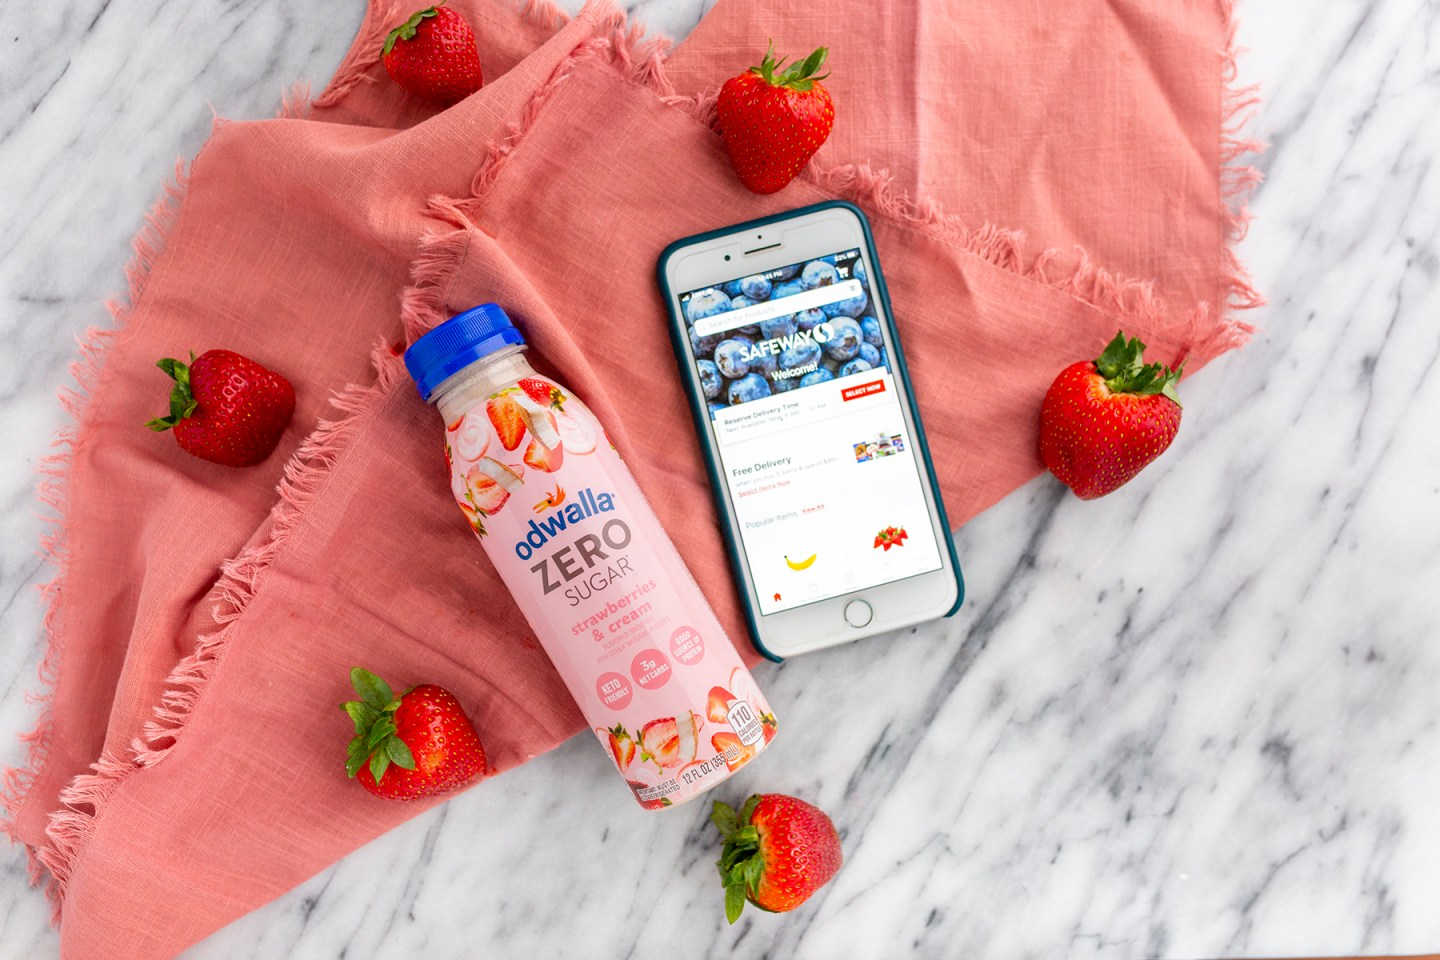 Odwalla zero sugar smoothies and Safeway mobile app